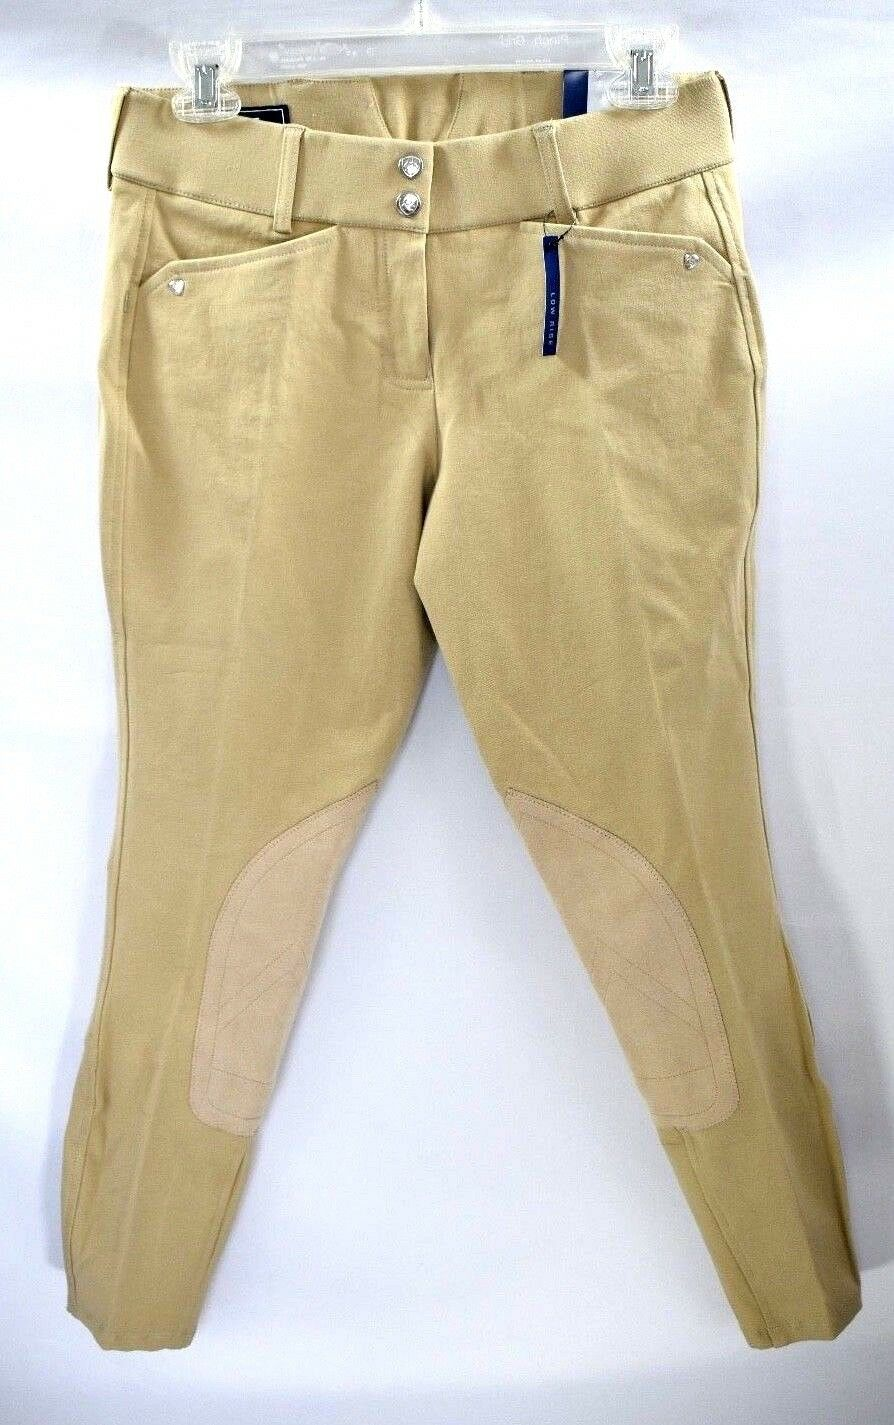 New Ariat Heritage Low Rise Front Zip Tan Breeches Equestrian Sz 26R  94.95